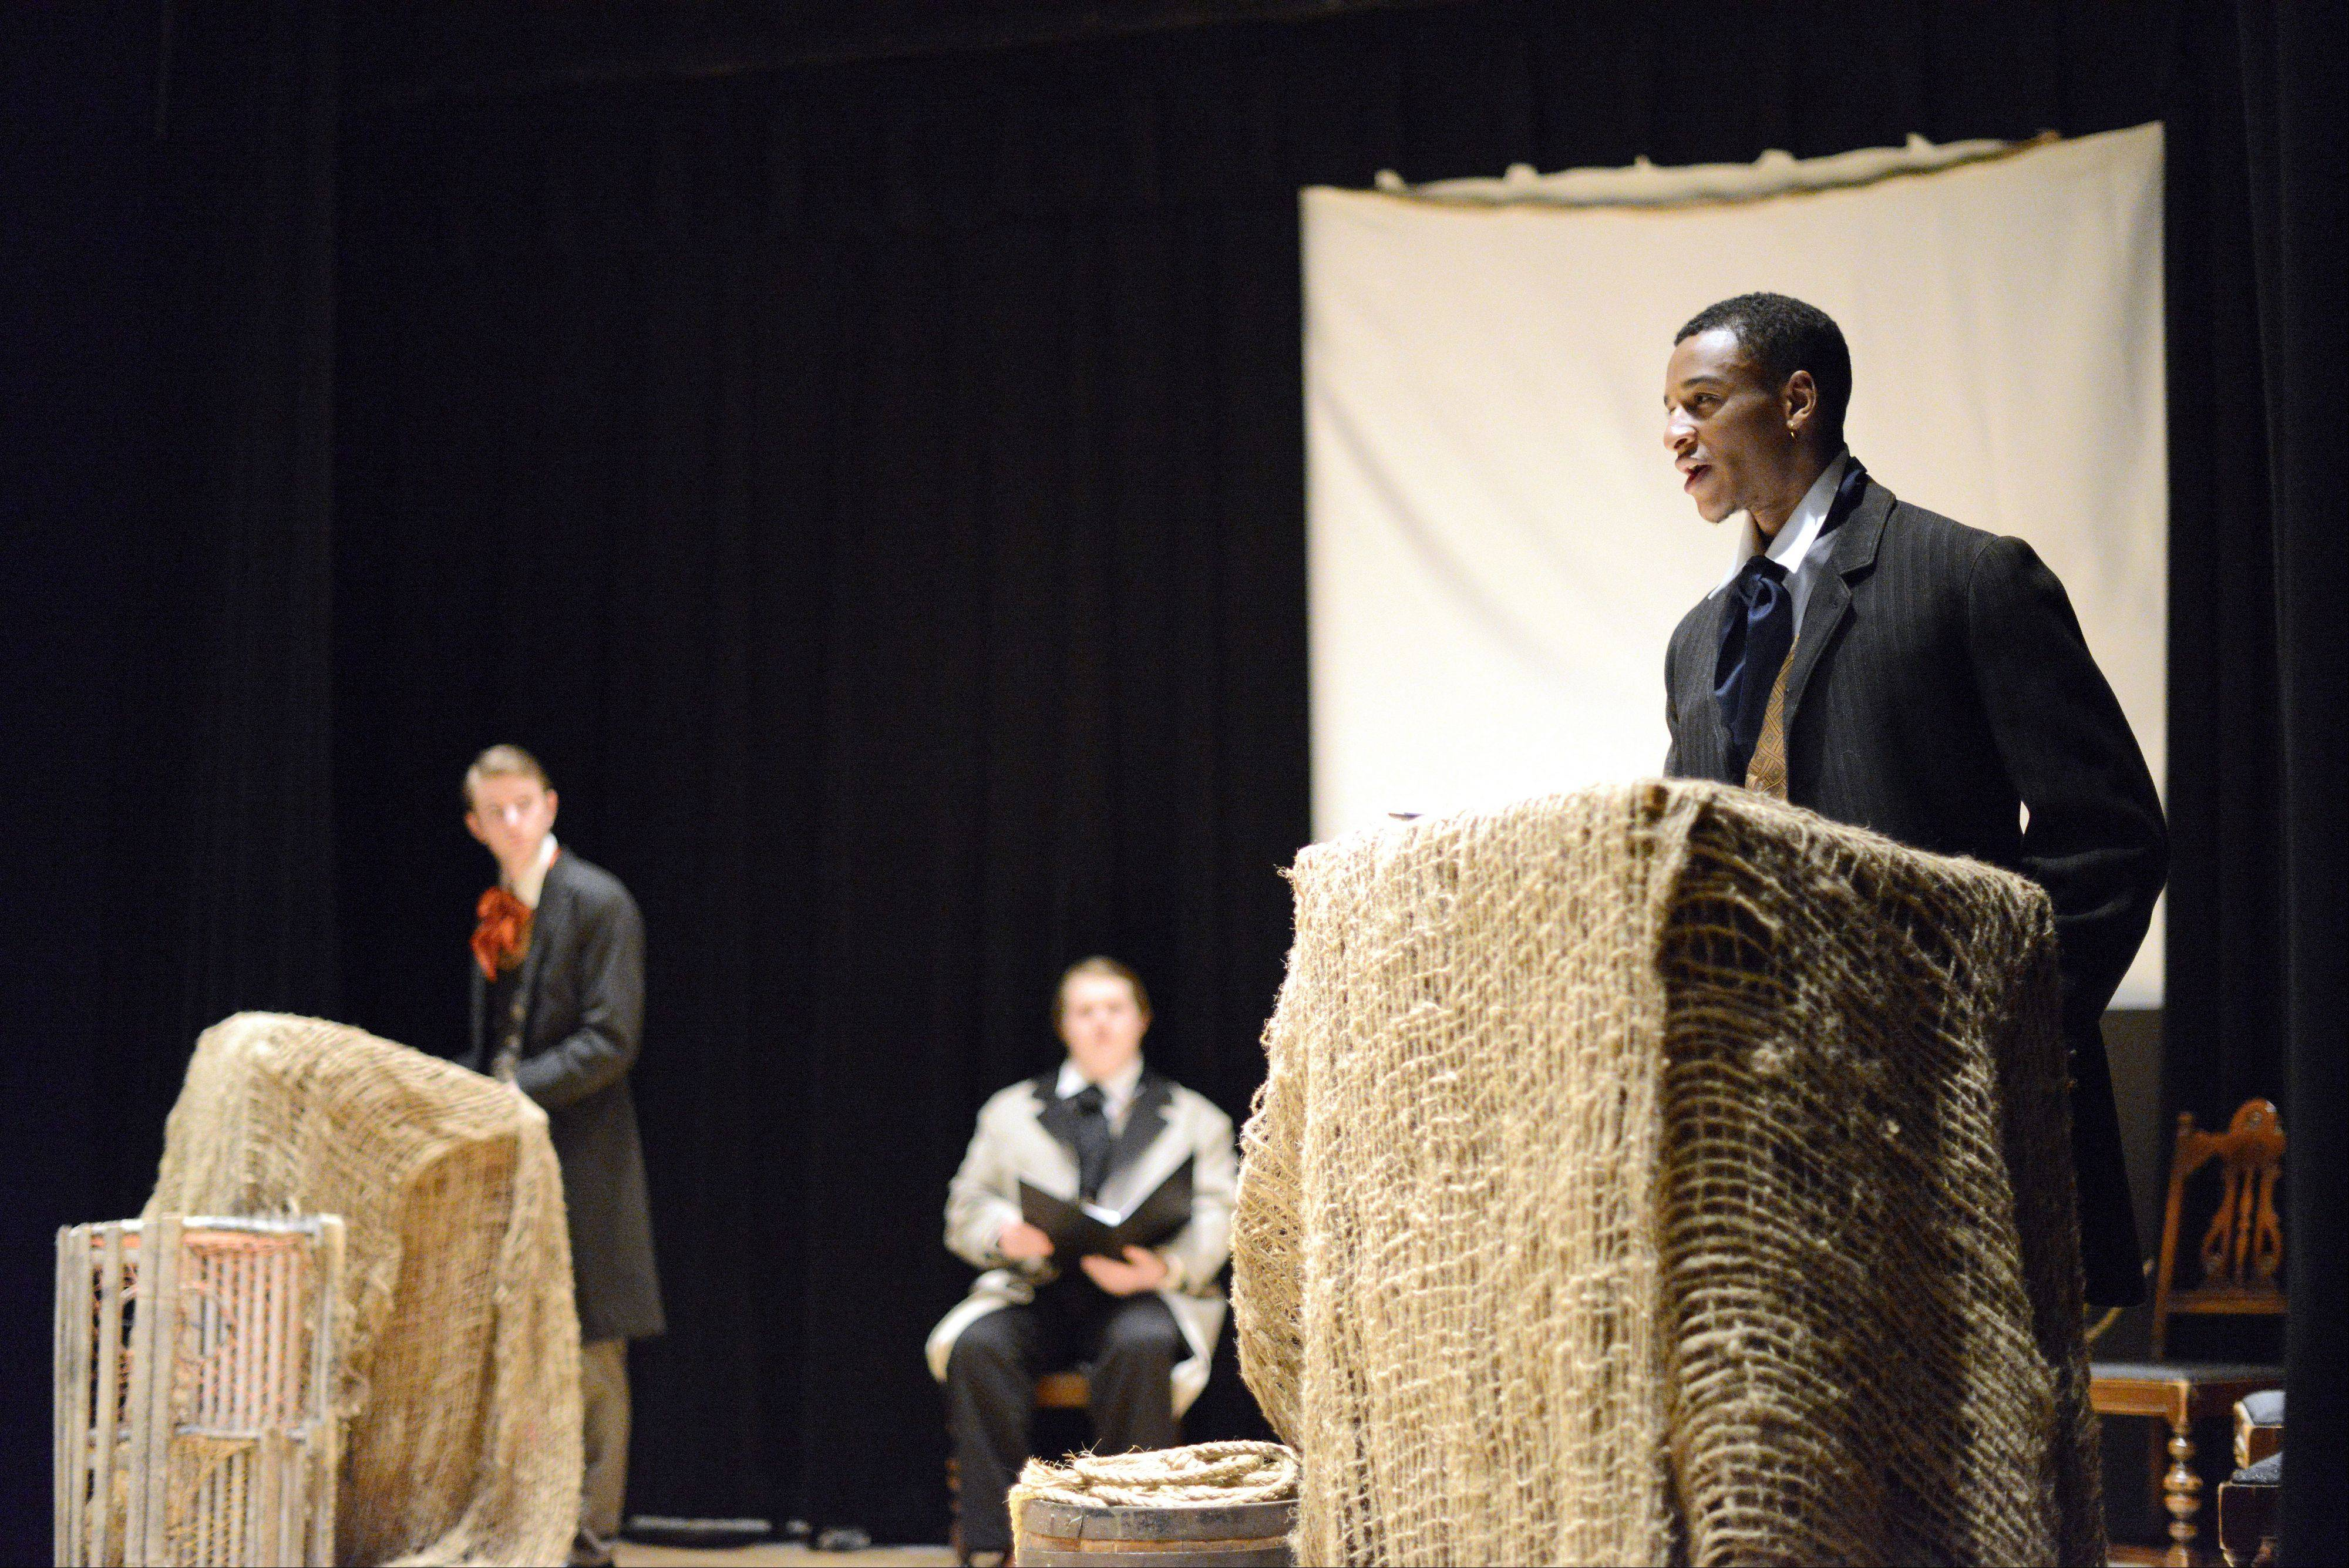 Julien Moore, 22, of Elgin portrays Olaudah Equiano in Elgin Community College�s production of �Voices of the Middle Passage.� The one-act play about the slave trade affected Moore emotionally. He already knew a lot about the history but was struck by details of the life of Equiano, who ultimately bought his freedom.